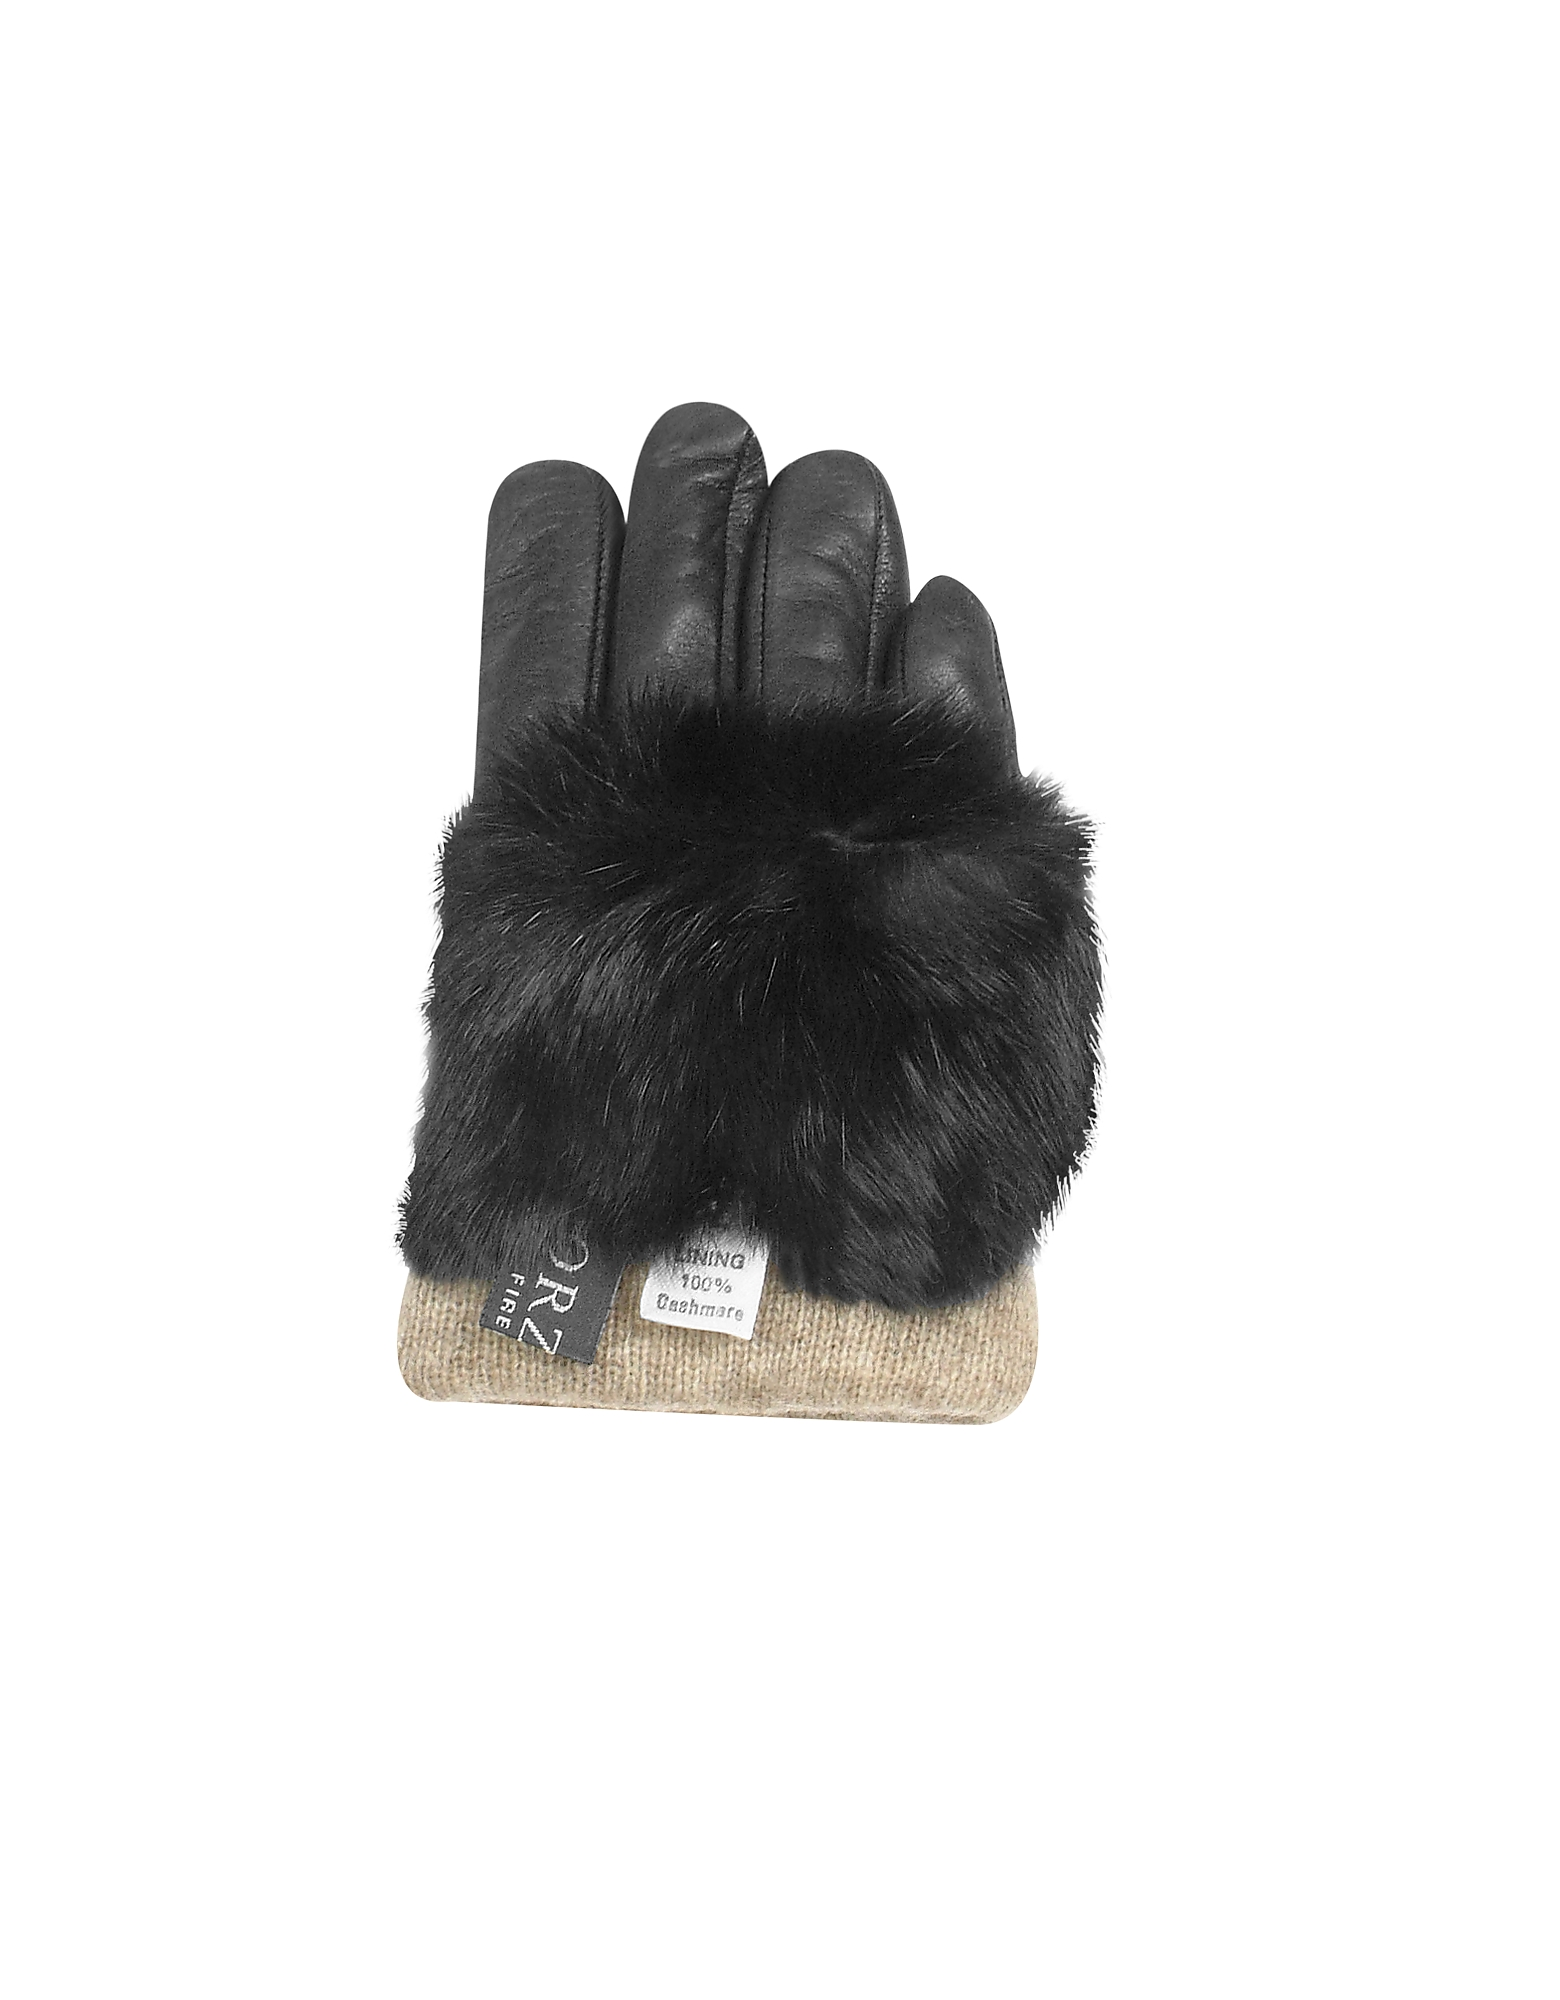 Black Cashmere Lined Italian Leather Gloves with Fur от Forzieri.com INT